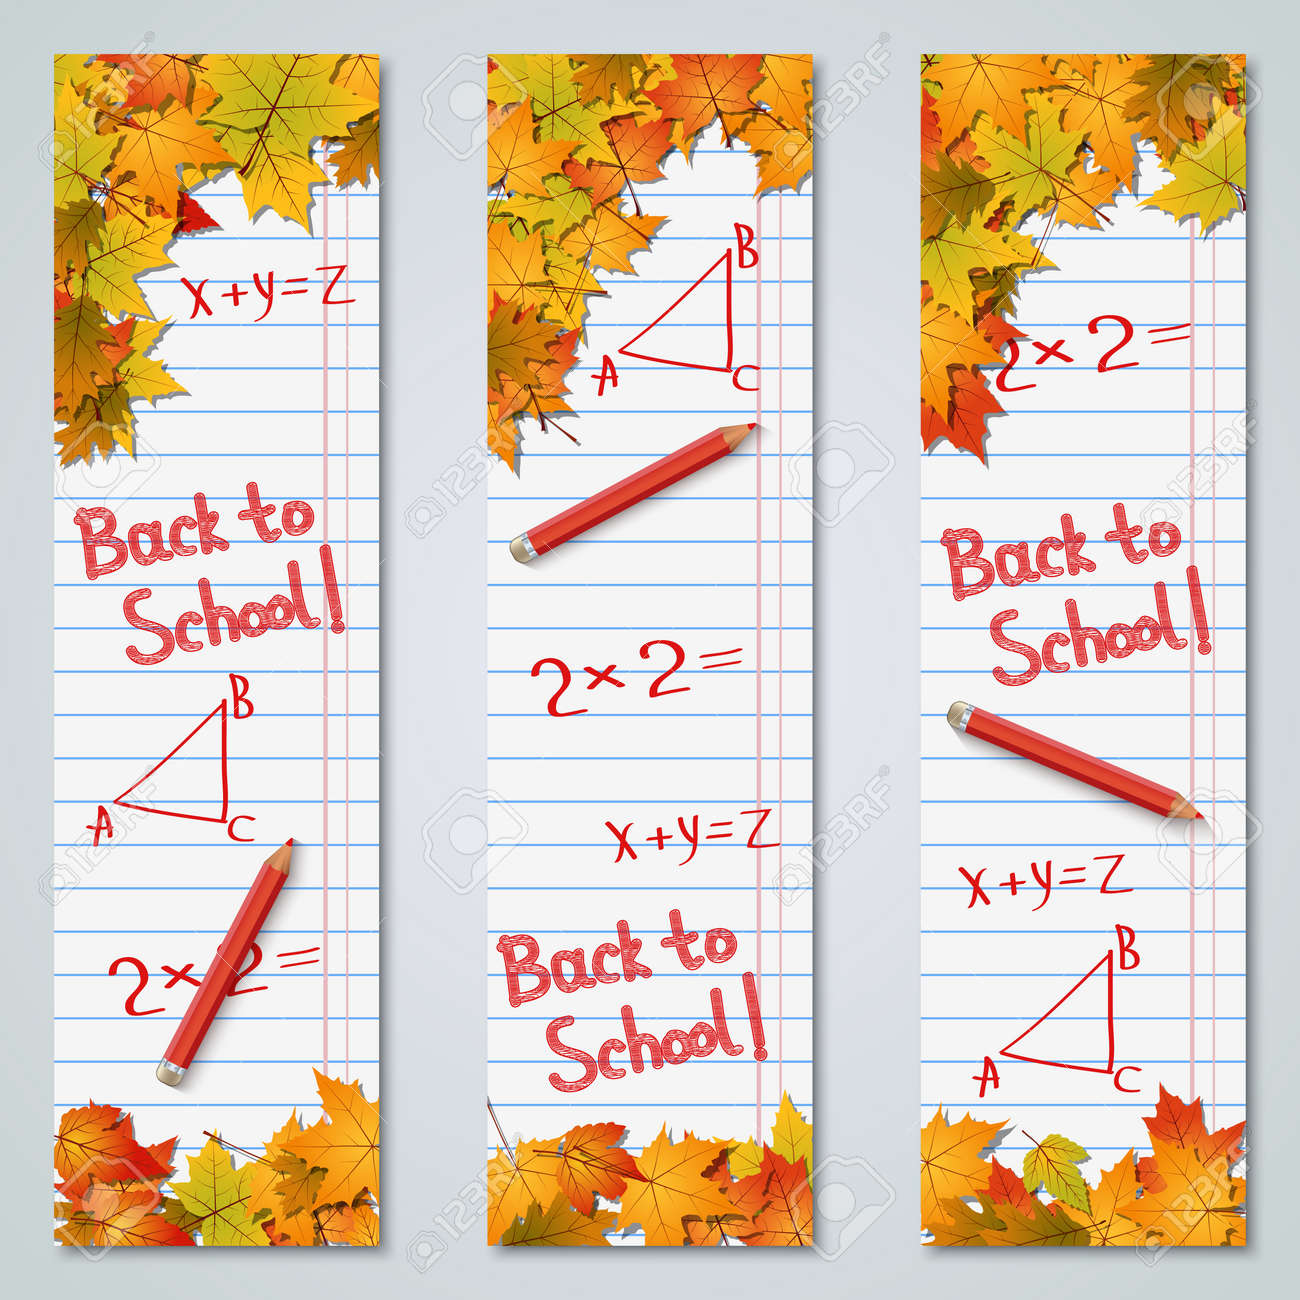 Back to school autumn style vertical banners vector design collection - 151988492